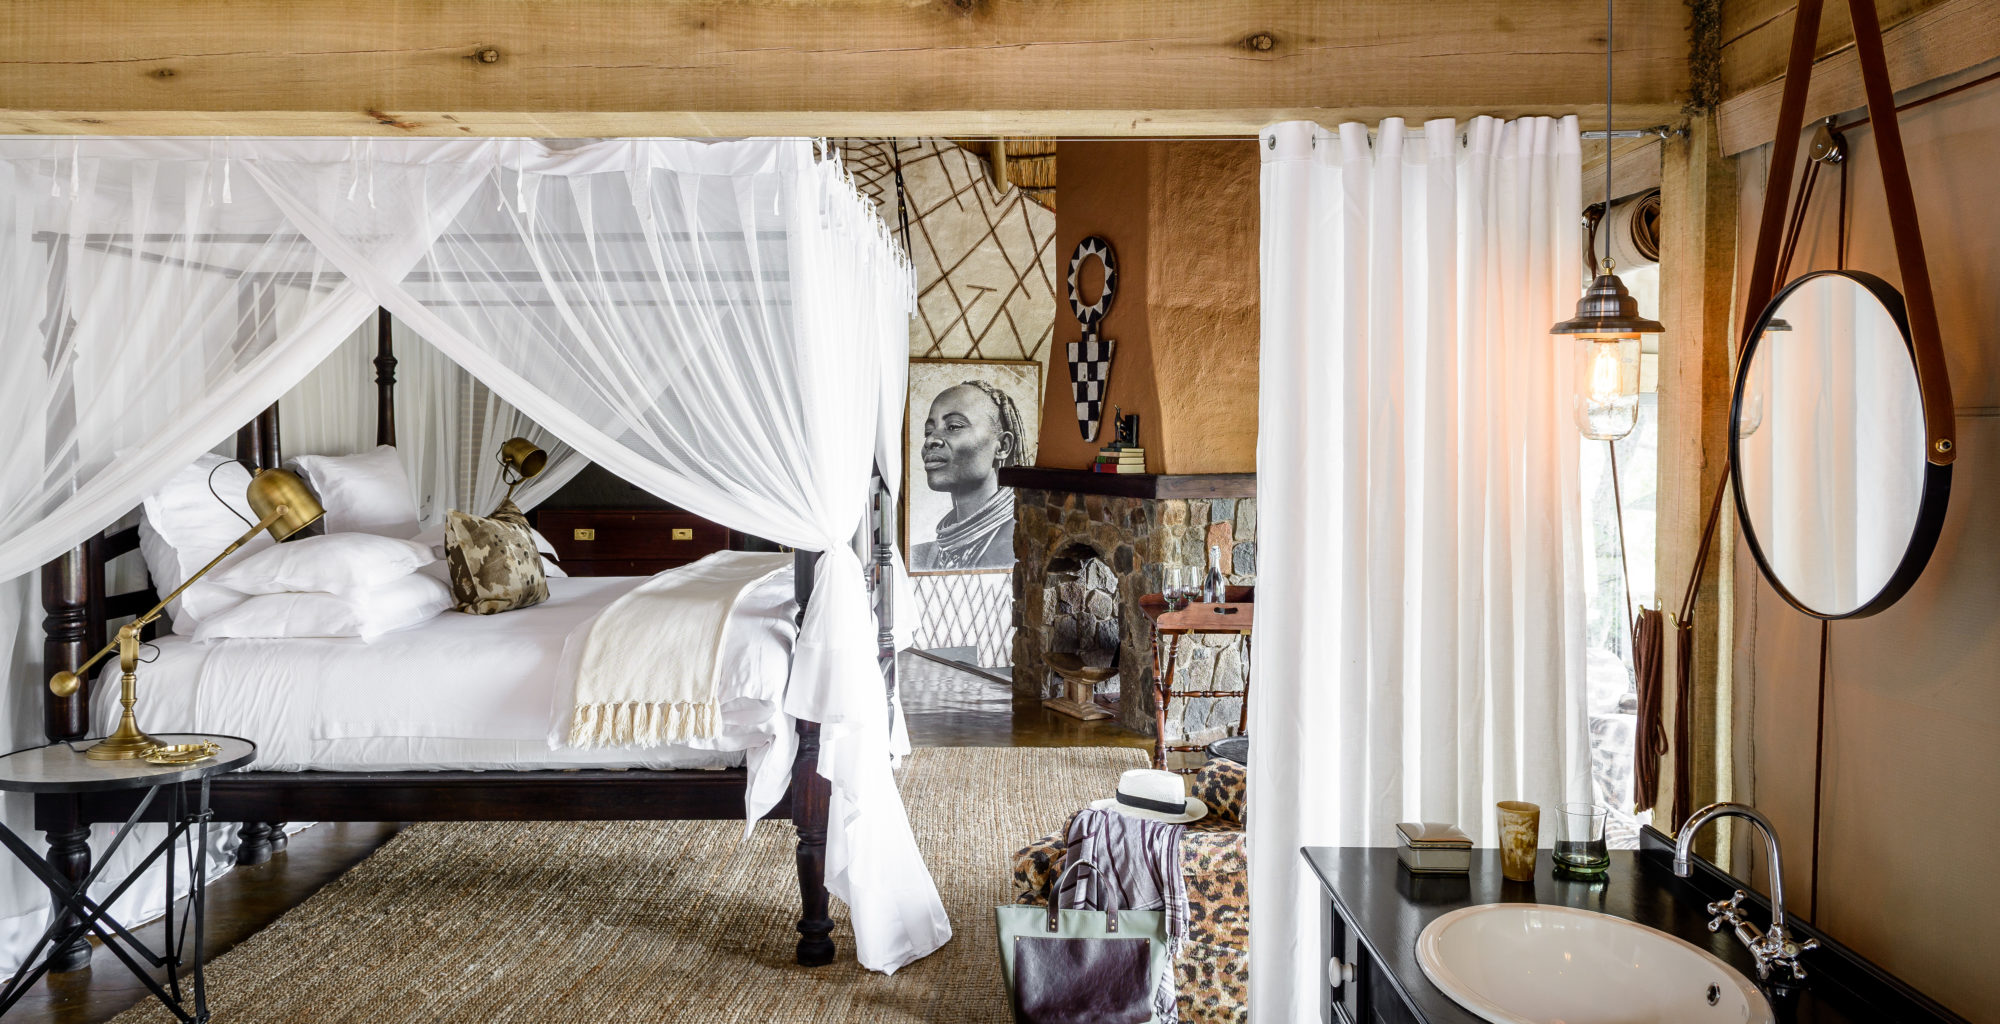 South-Africa-Singita-Ebony-Bedroom